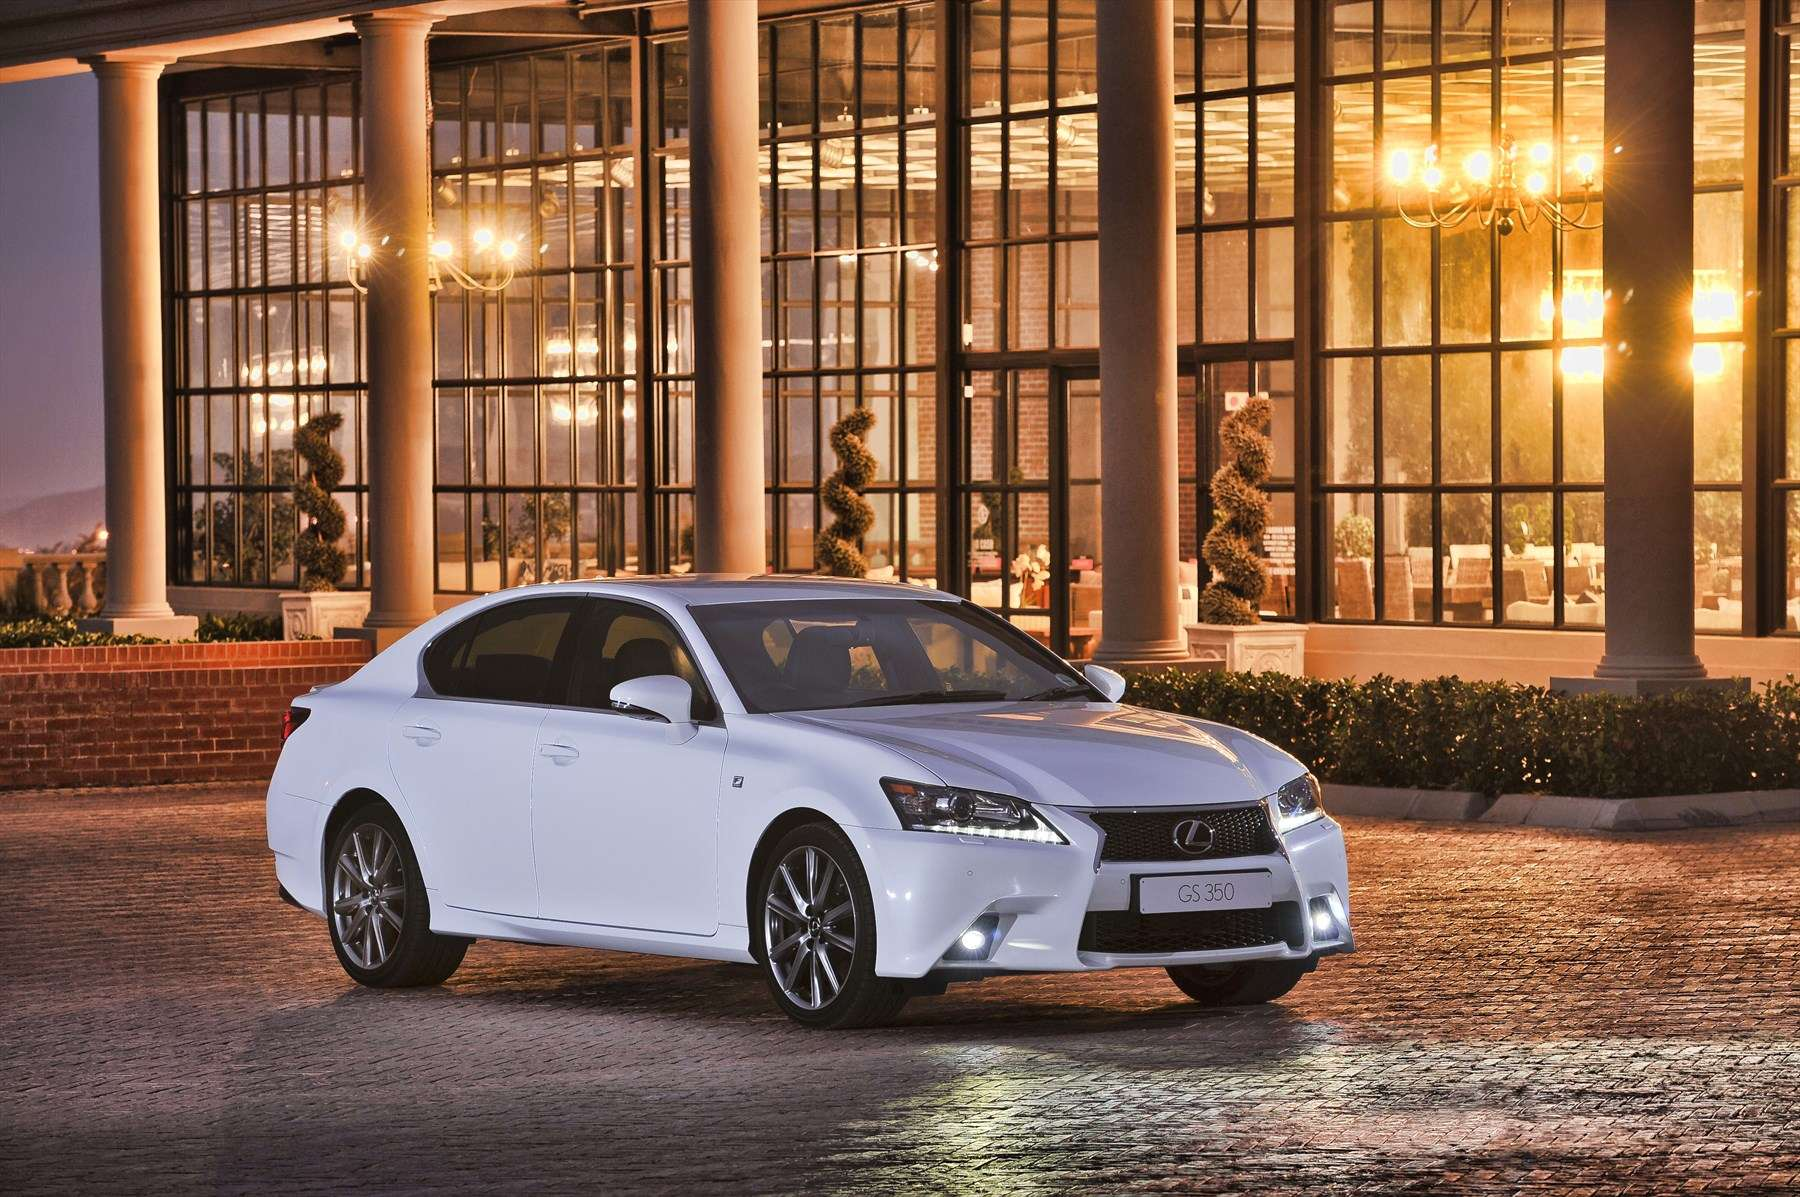 Executive Lexus Enhanced: Latest News